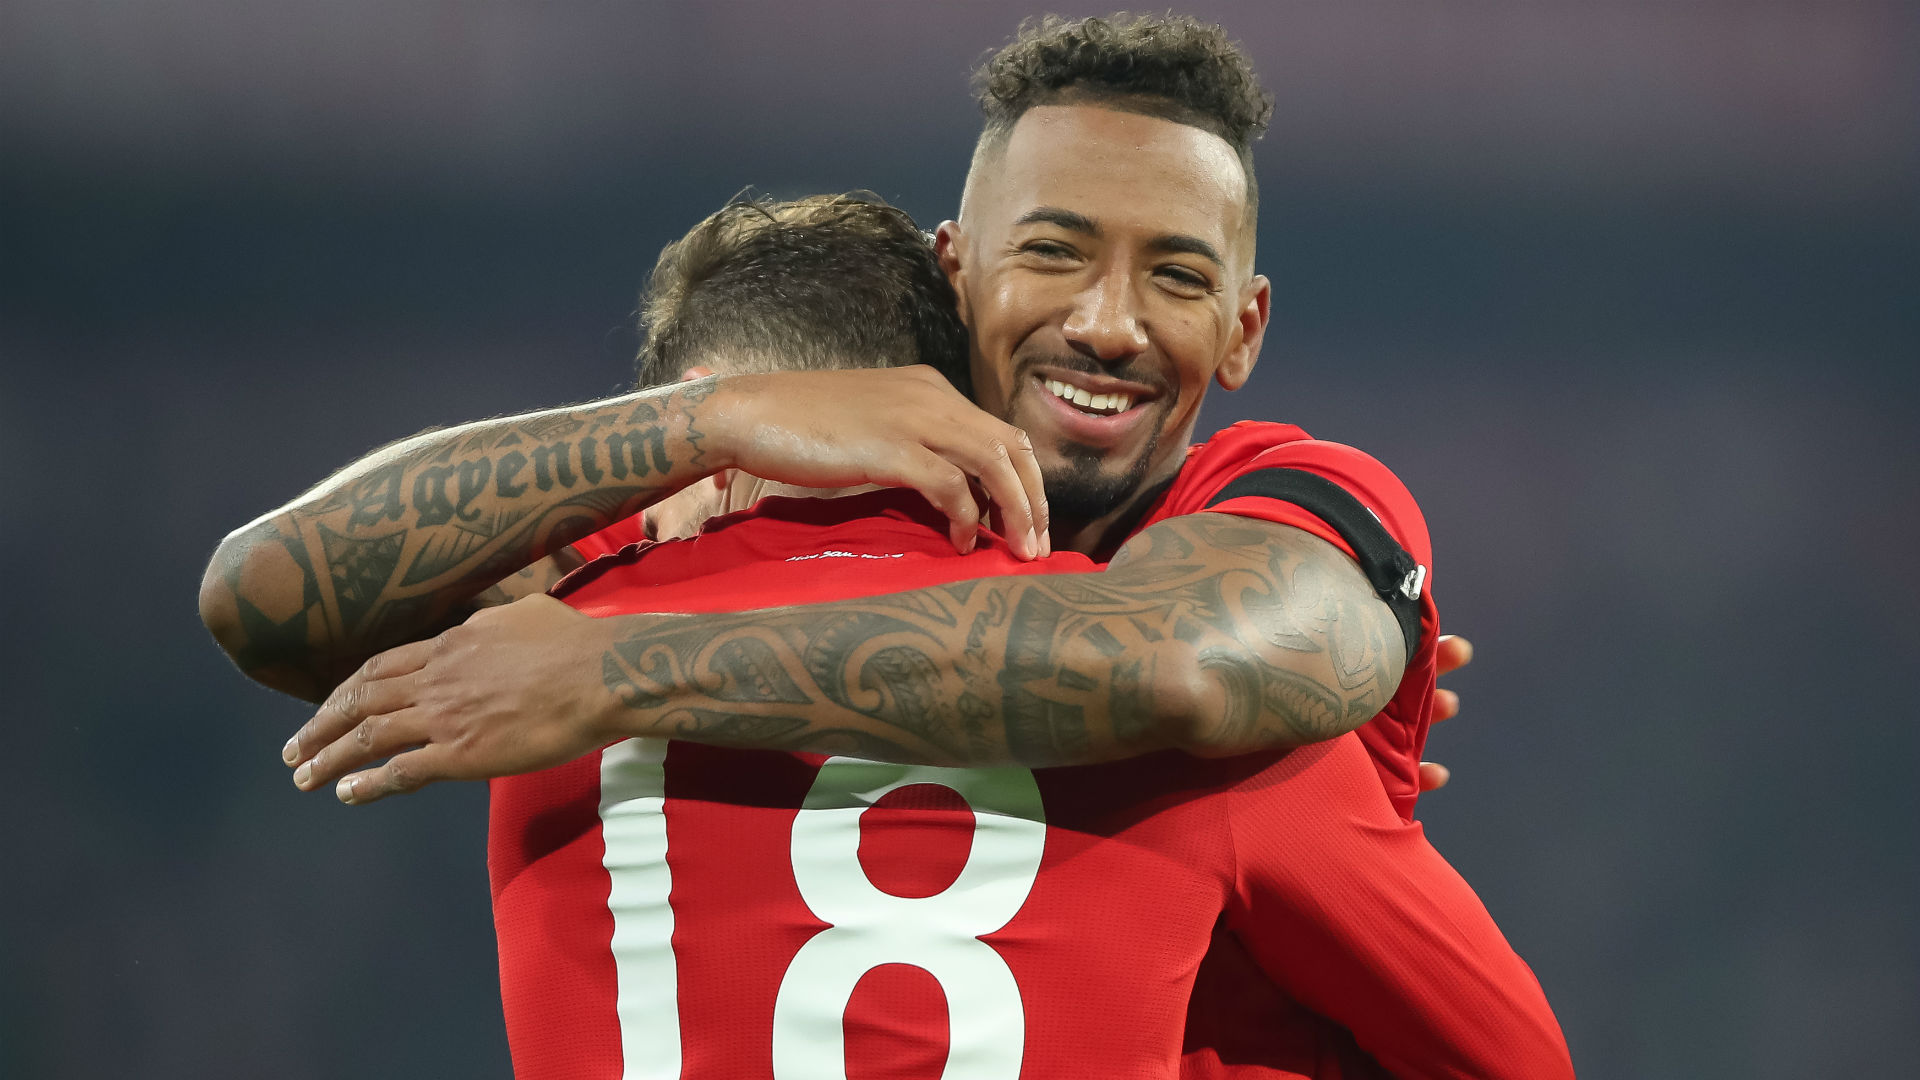 Goretzka and Boateng bust-up is in the past, insists Bayern boss Flick